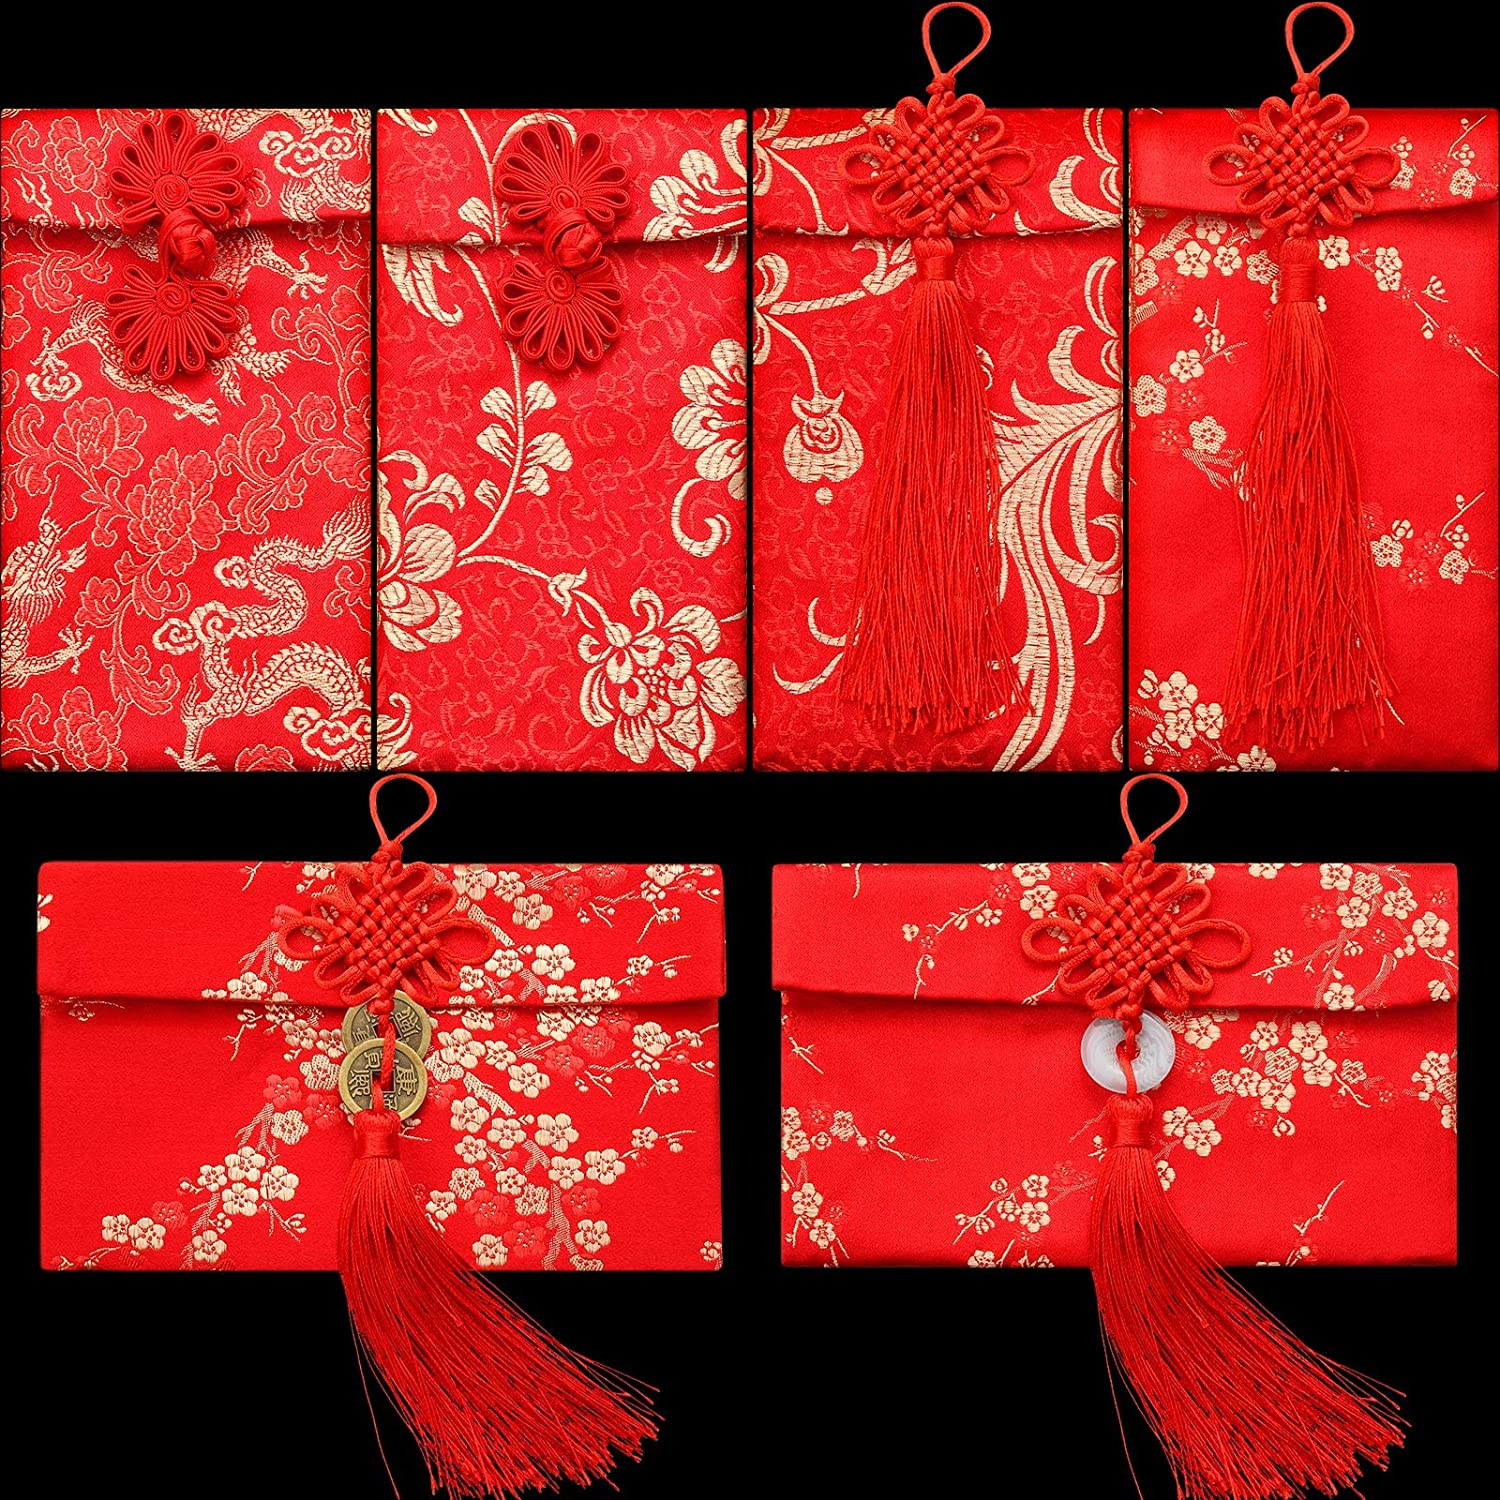 6 Pieces Omaha Mall Silk Red Envelopes Max 77% OFF New HongBao Card Chinese Y